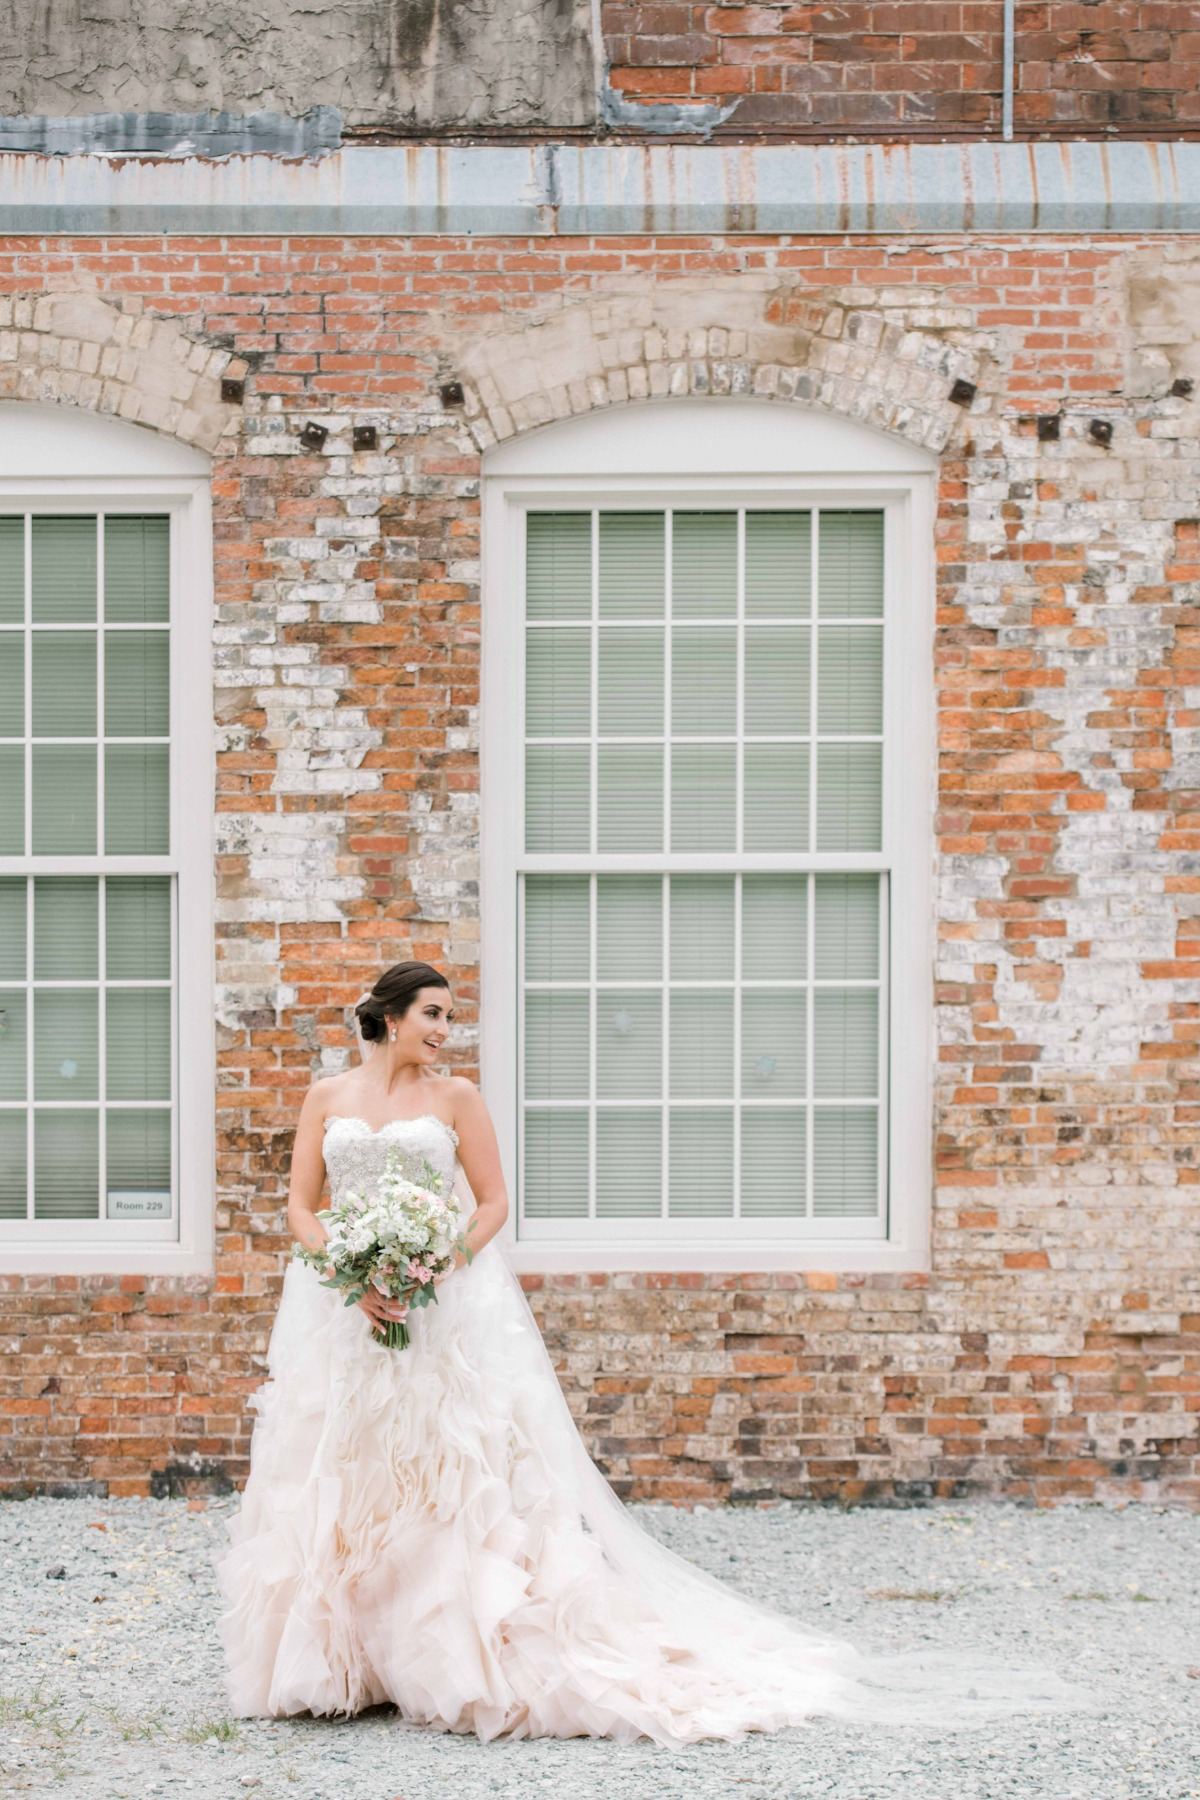 Ways That You Can Support Your Wedding Vendors Right Now